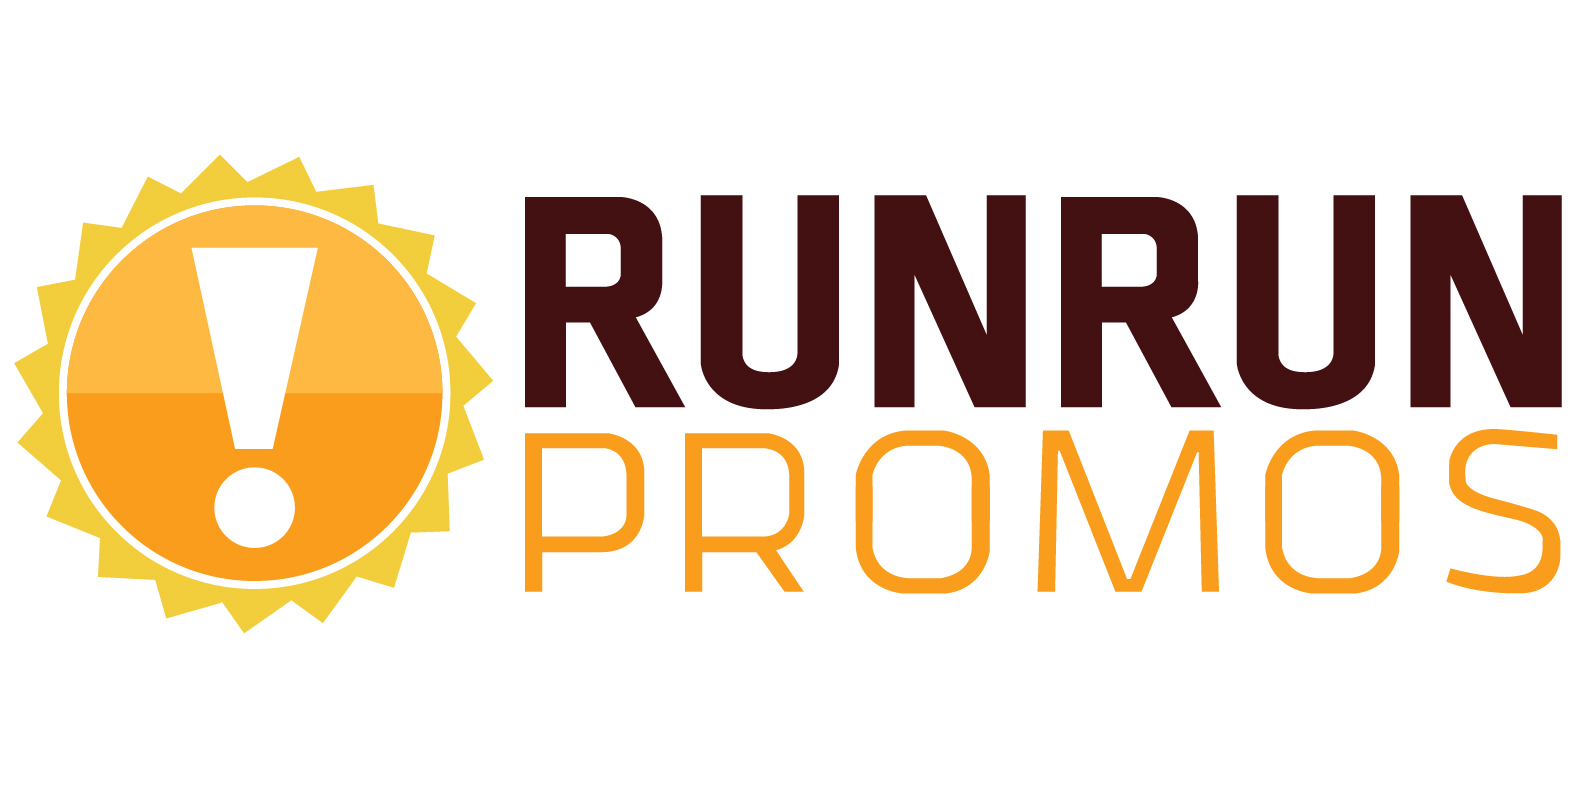 RunRunPromos officially ready for Launch!